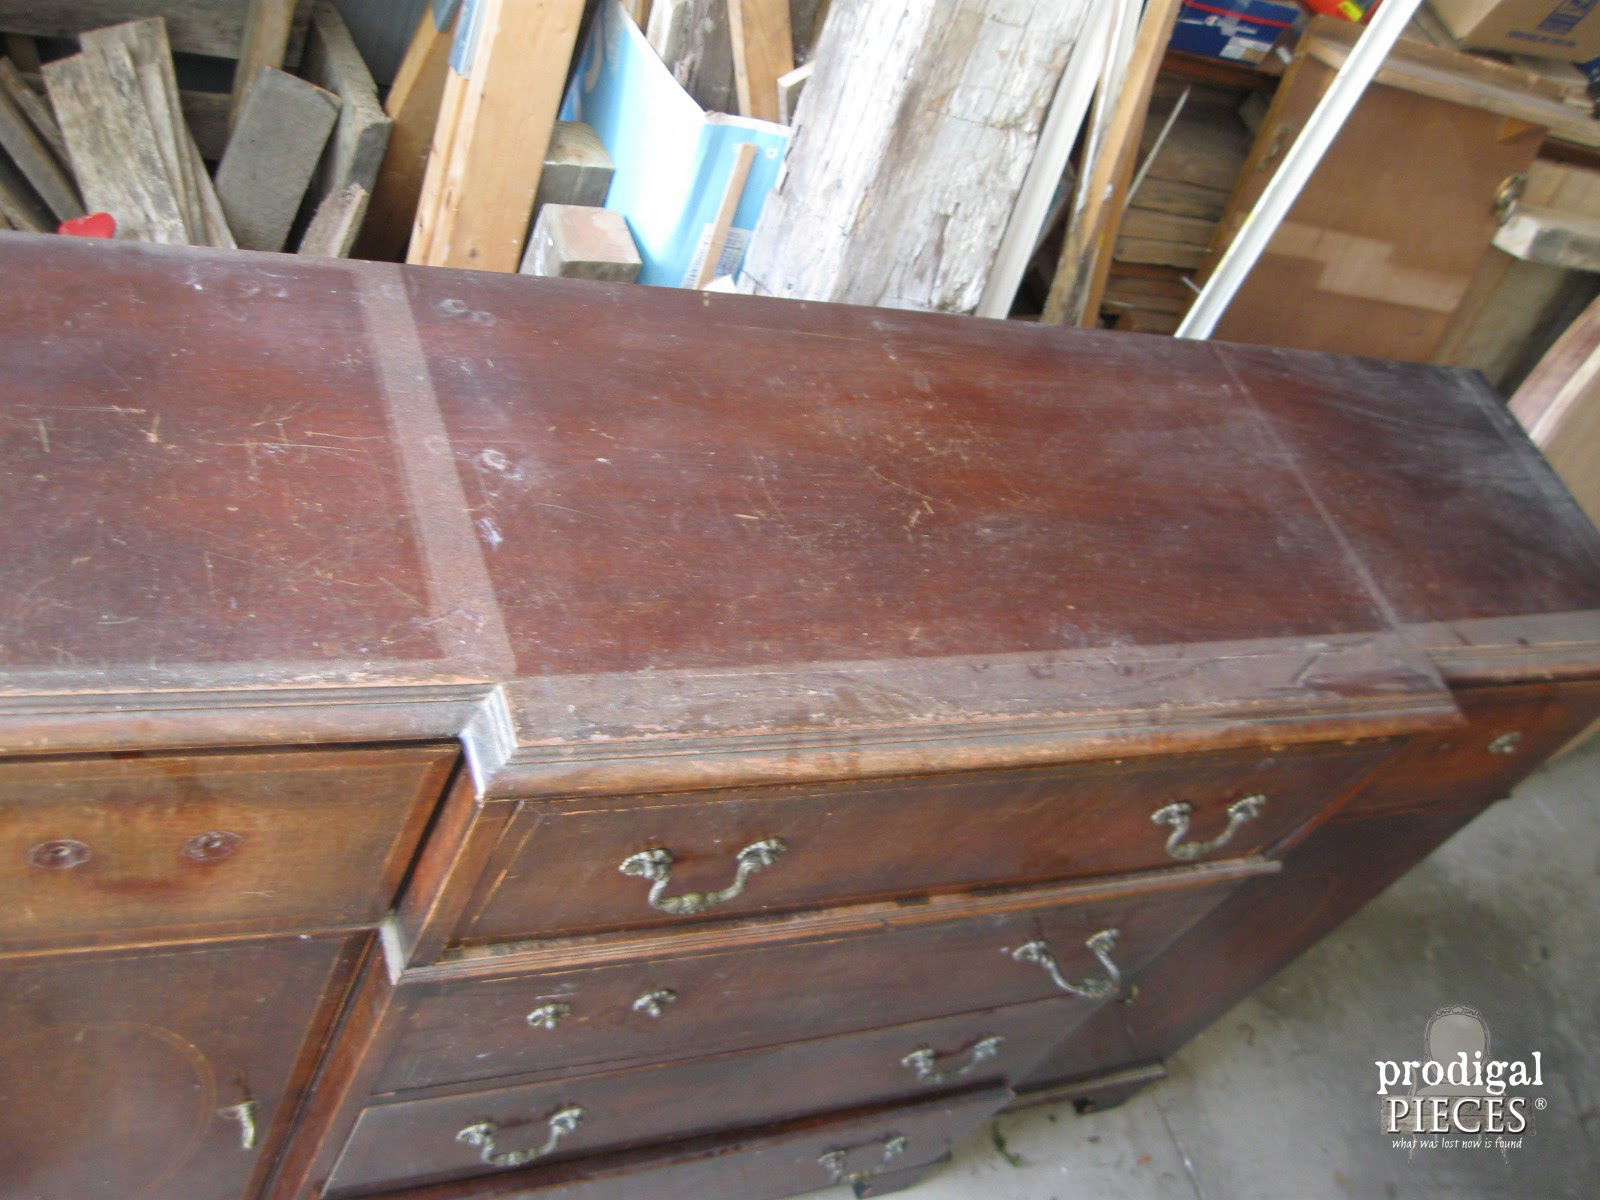 Damaged Vintage Bureau Top | Prodigal Pieces | www.prodigalpieces.com